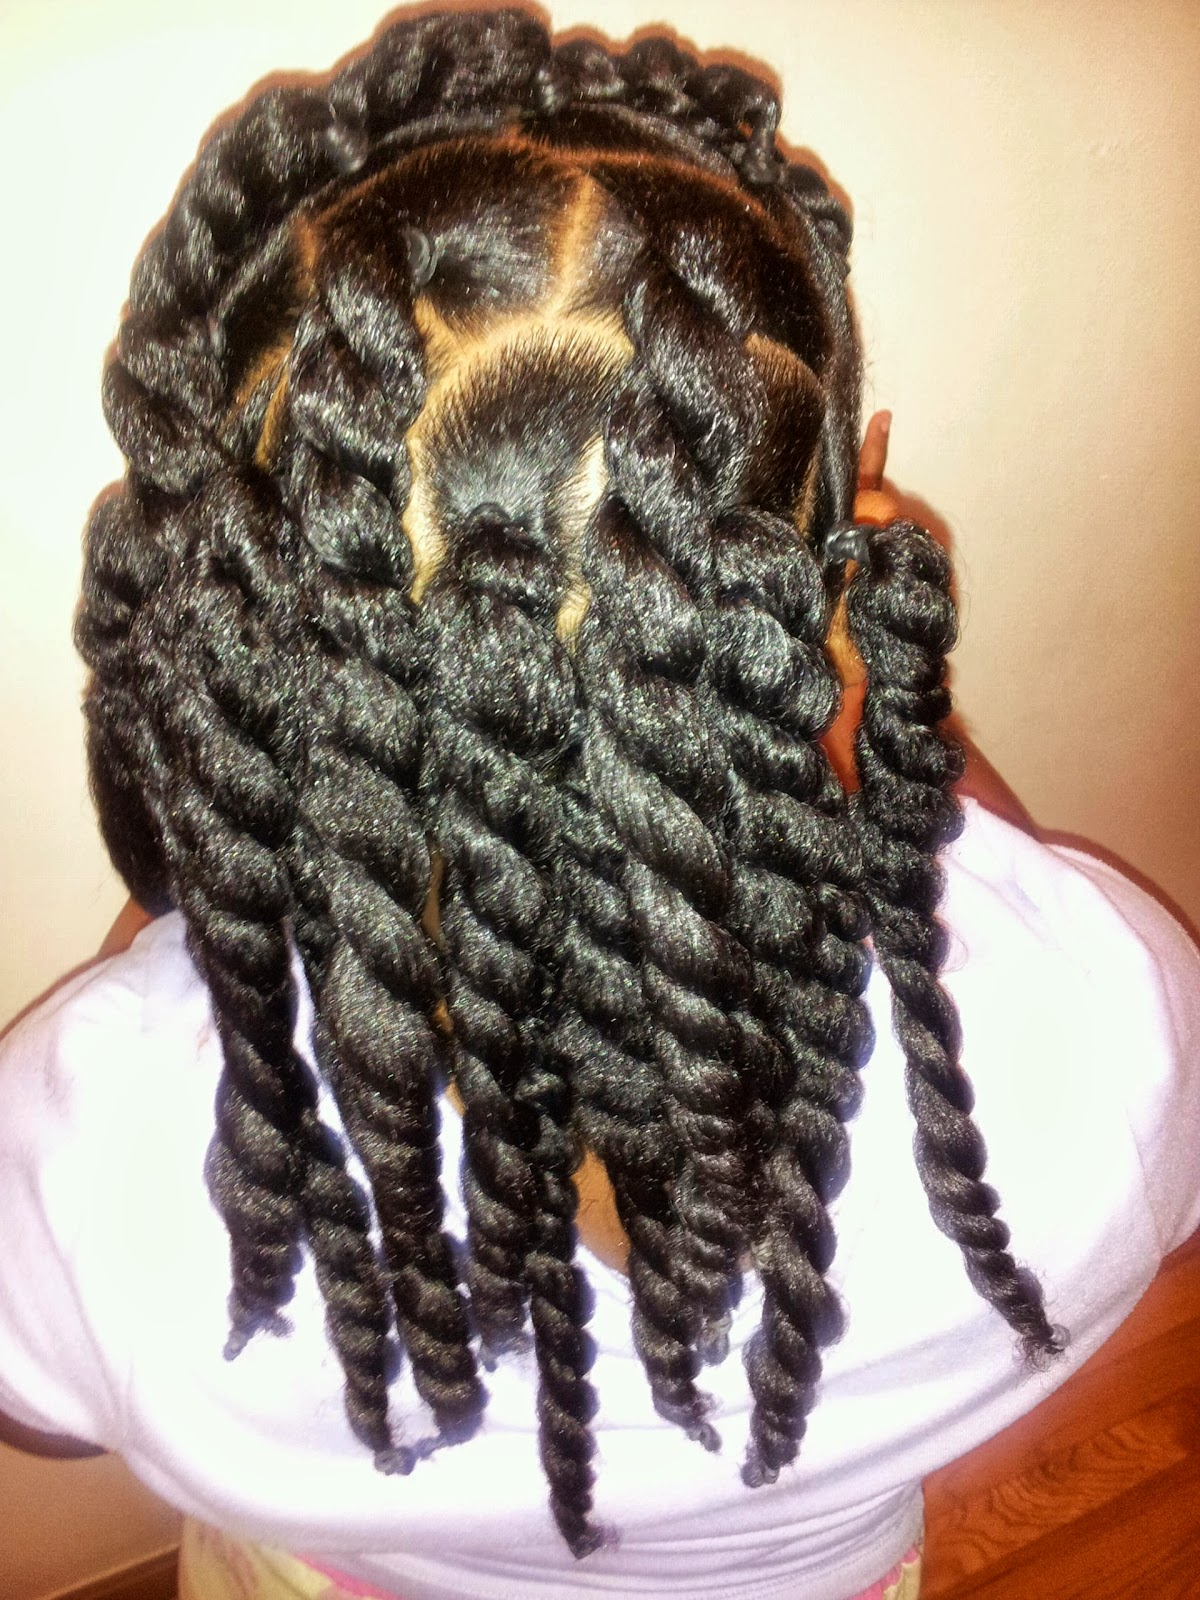 Curves Curls & Style: Natural Hairstyles for Kids